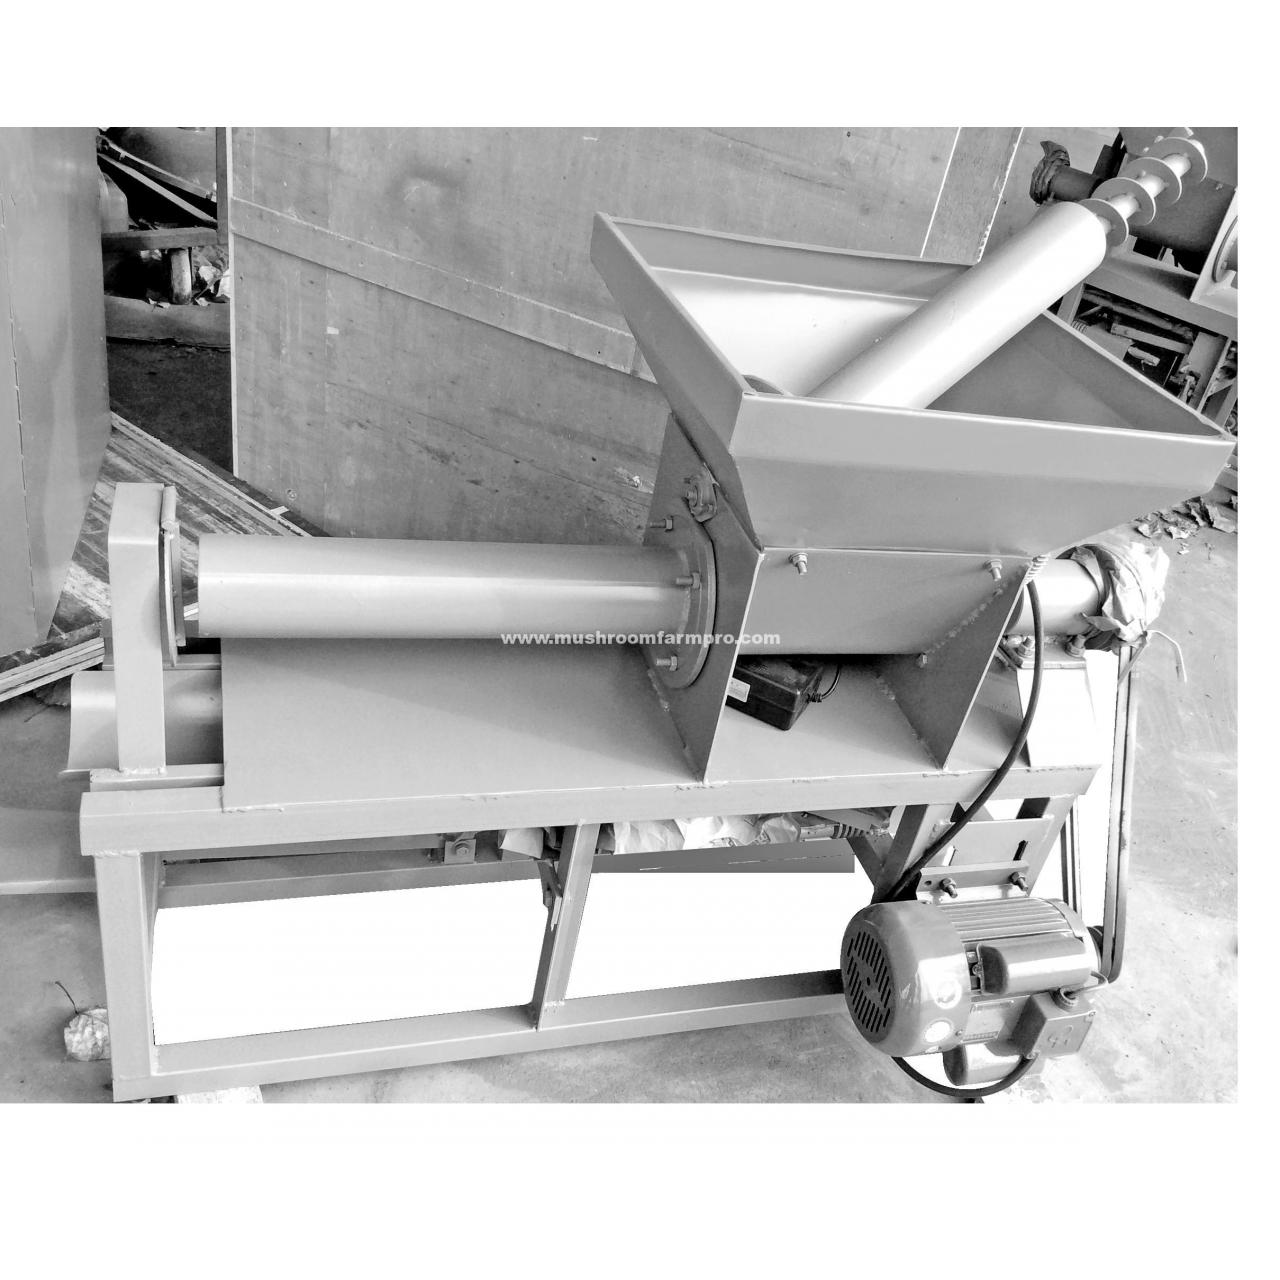 Buy cheap fungus oyster shiitake mushroom bagging machines from wholesalers